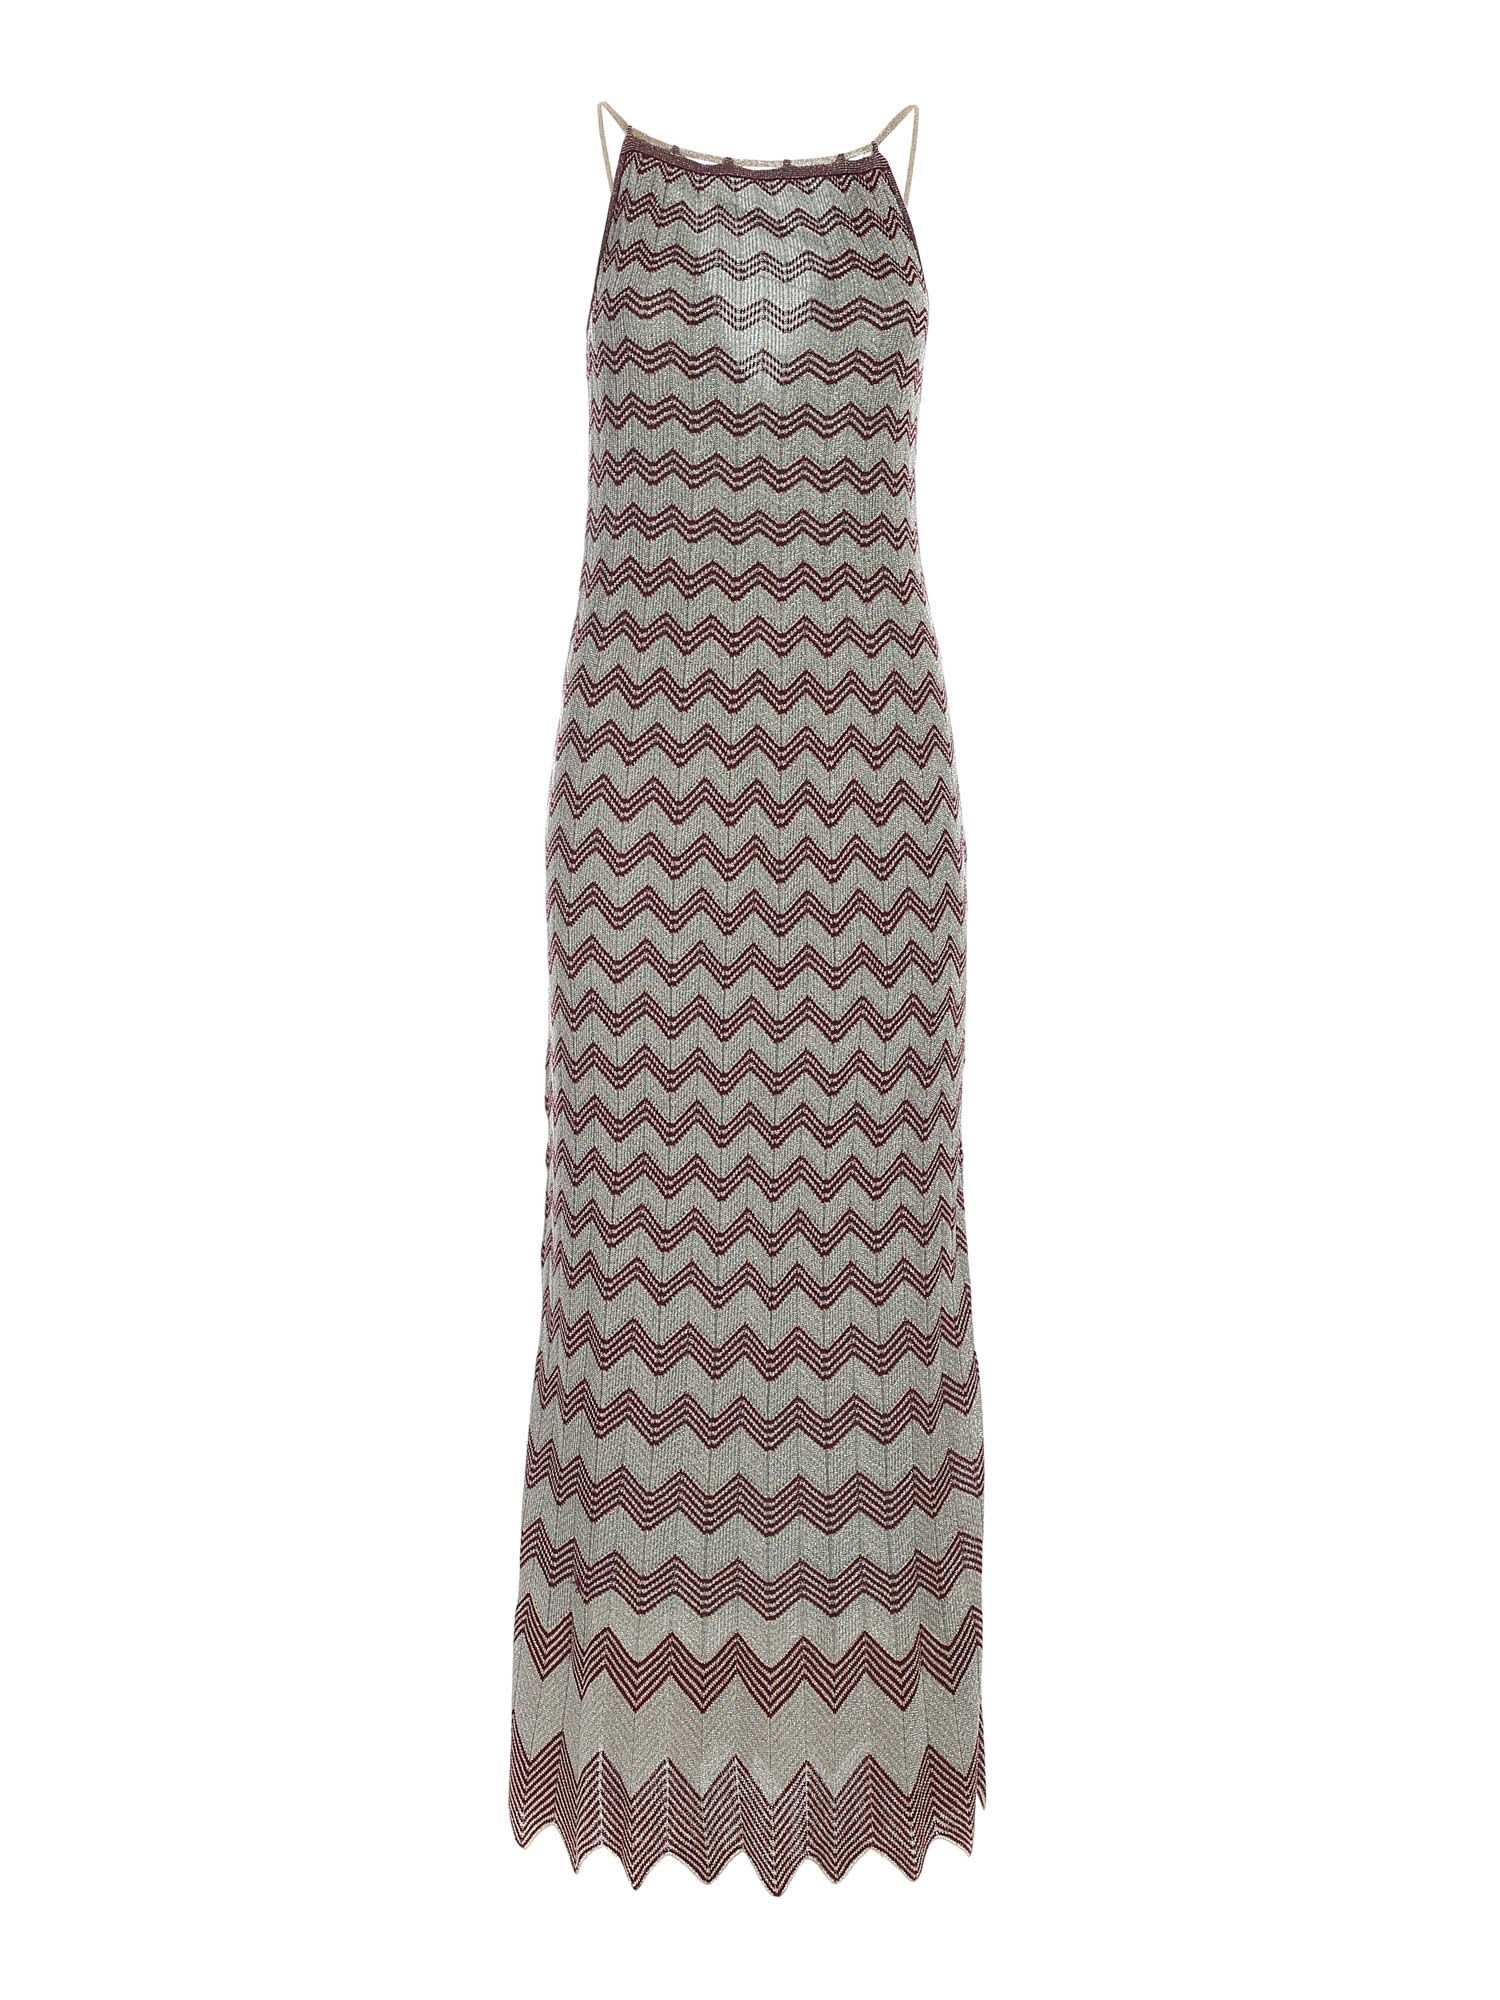 M Missoni LAM KNITTED DRESS IN LIGHT BLUE AND GOLD